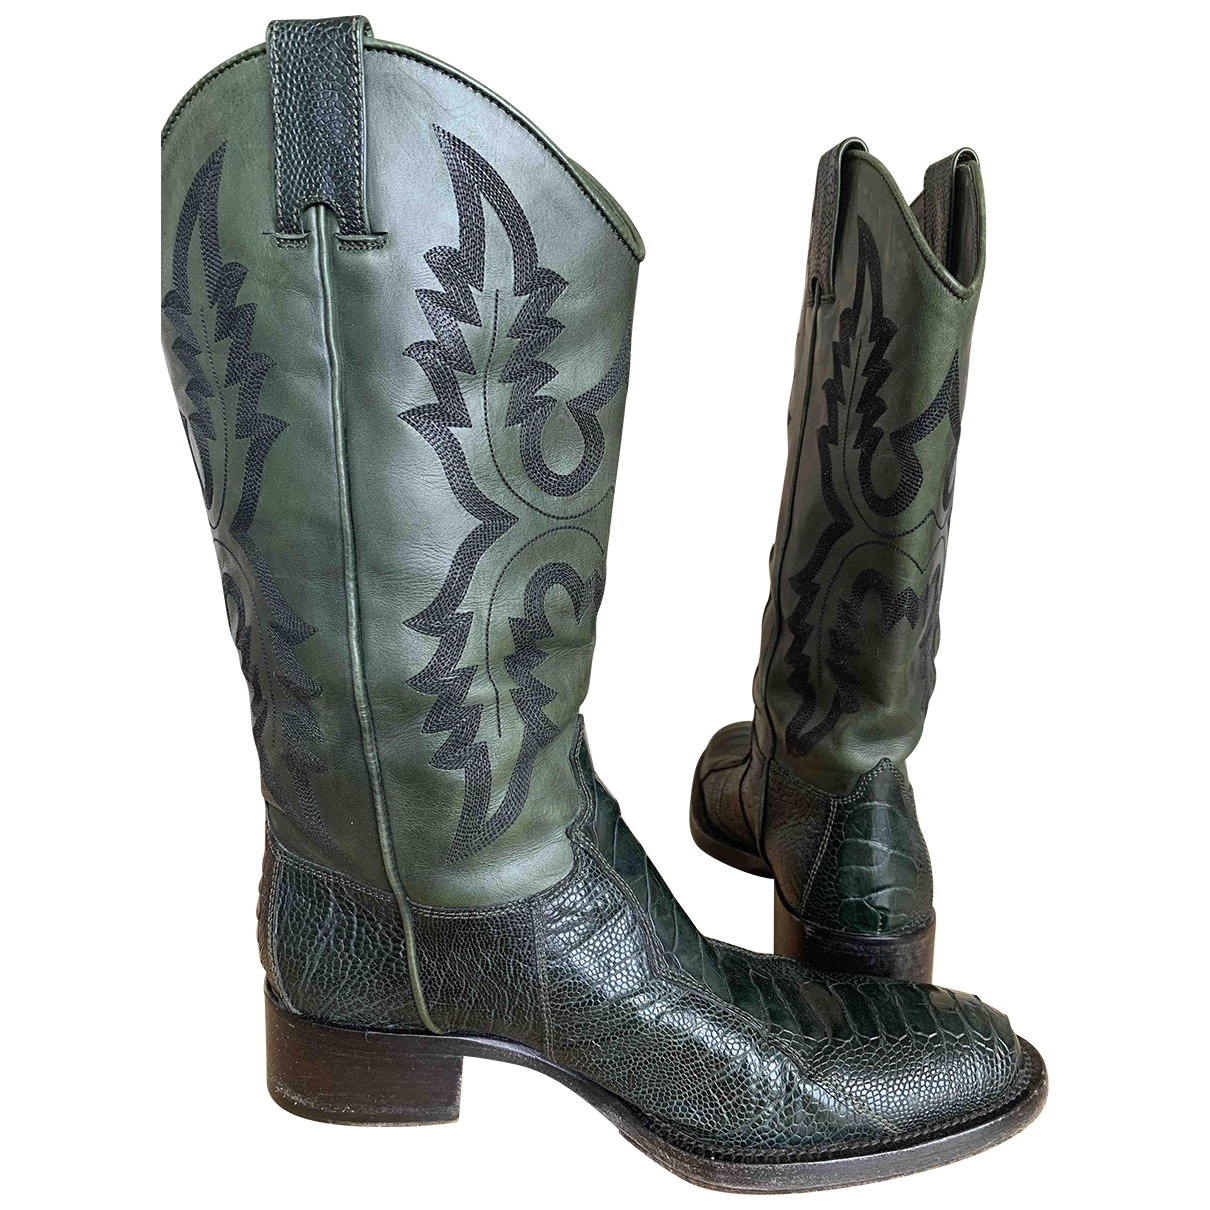 Sartore \N Green Leather Boots for Women 36.5 EU